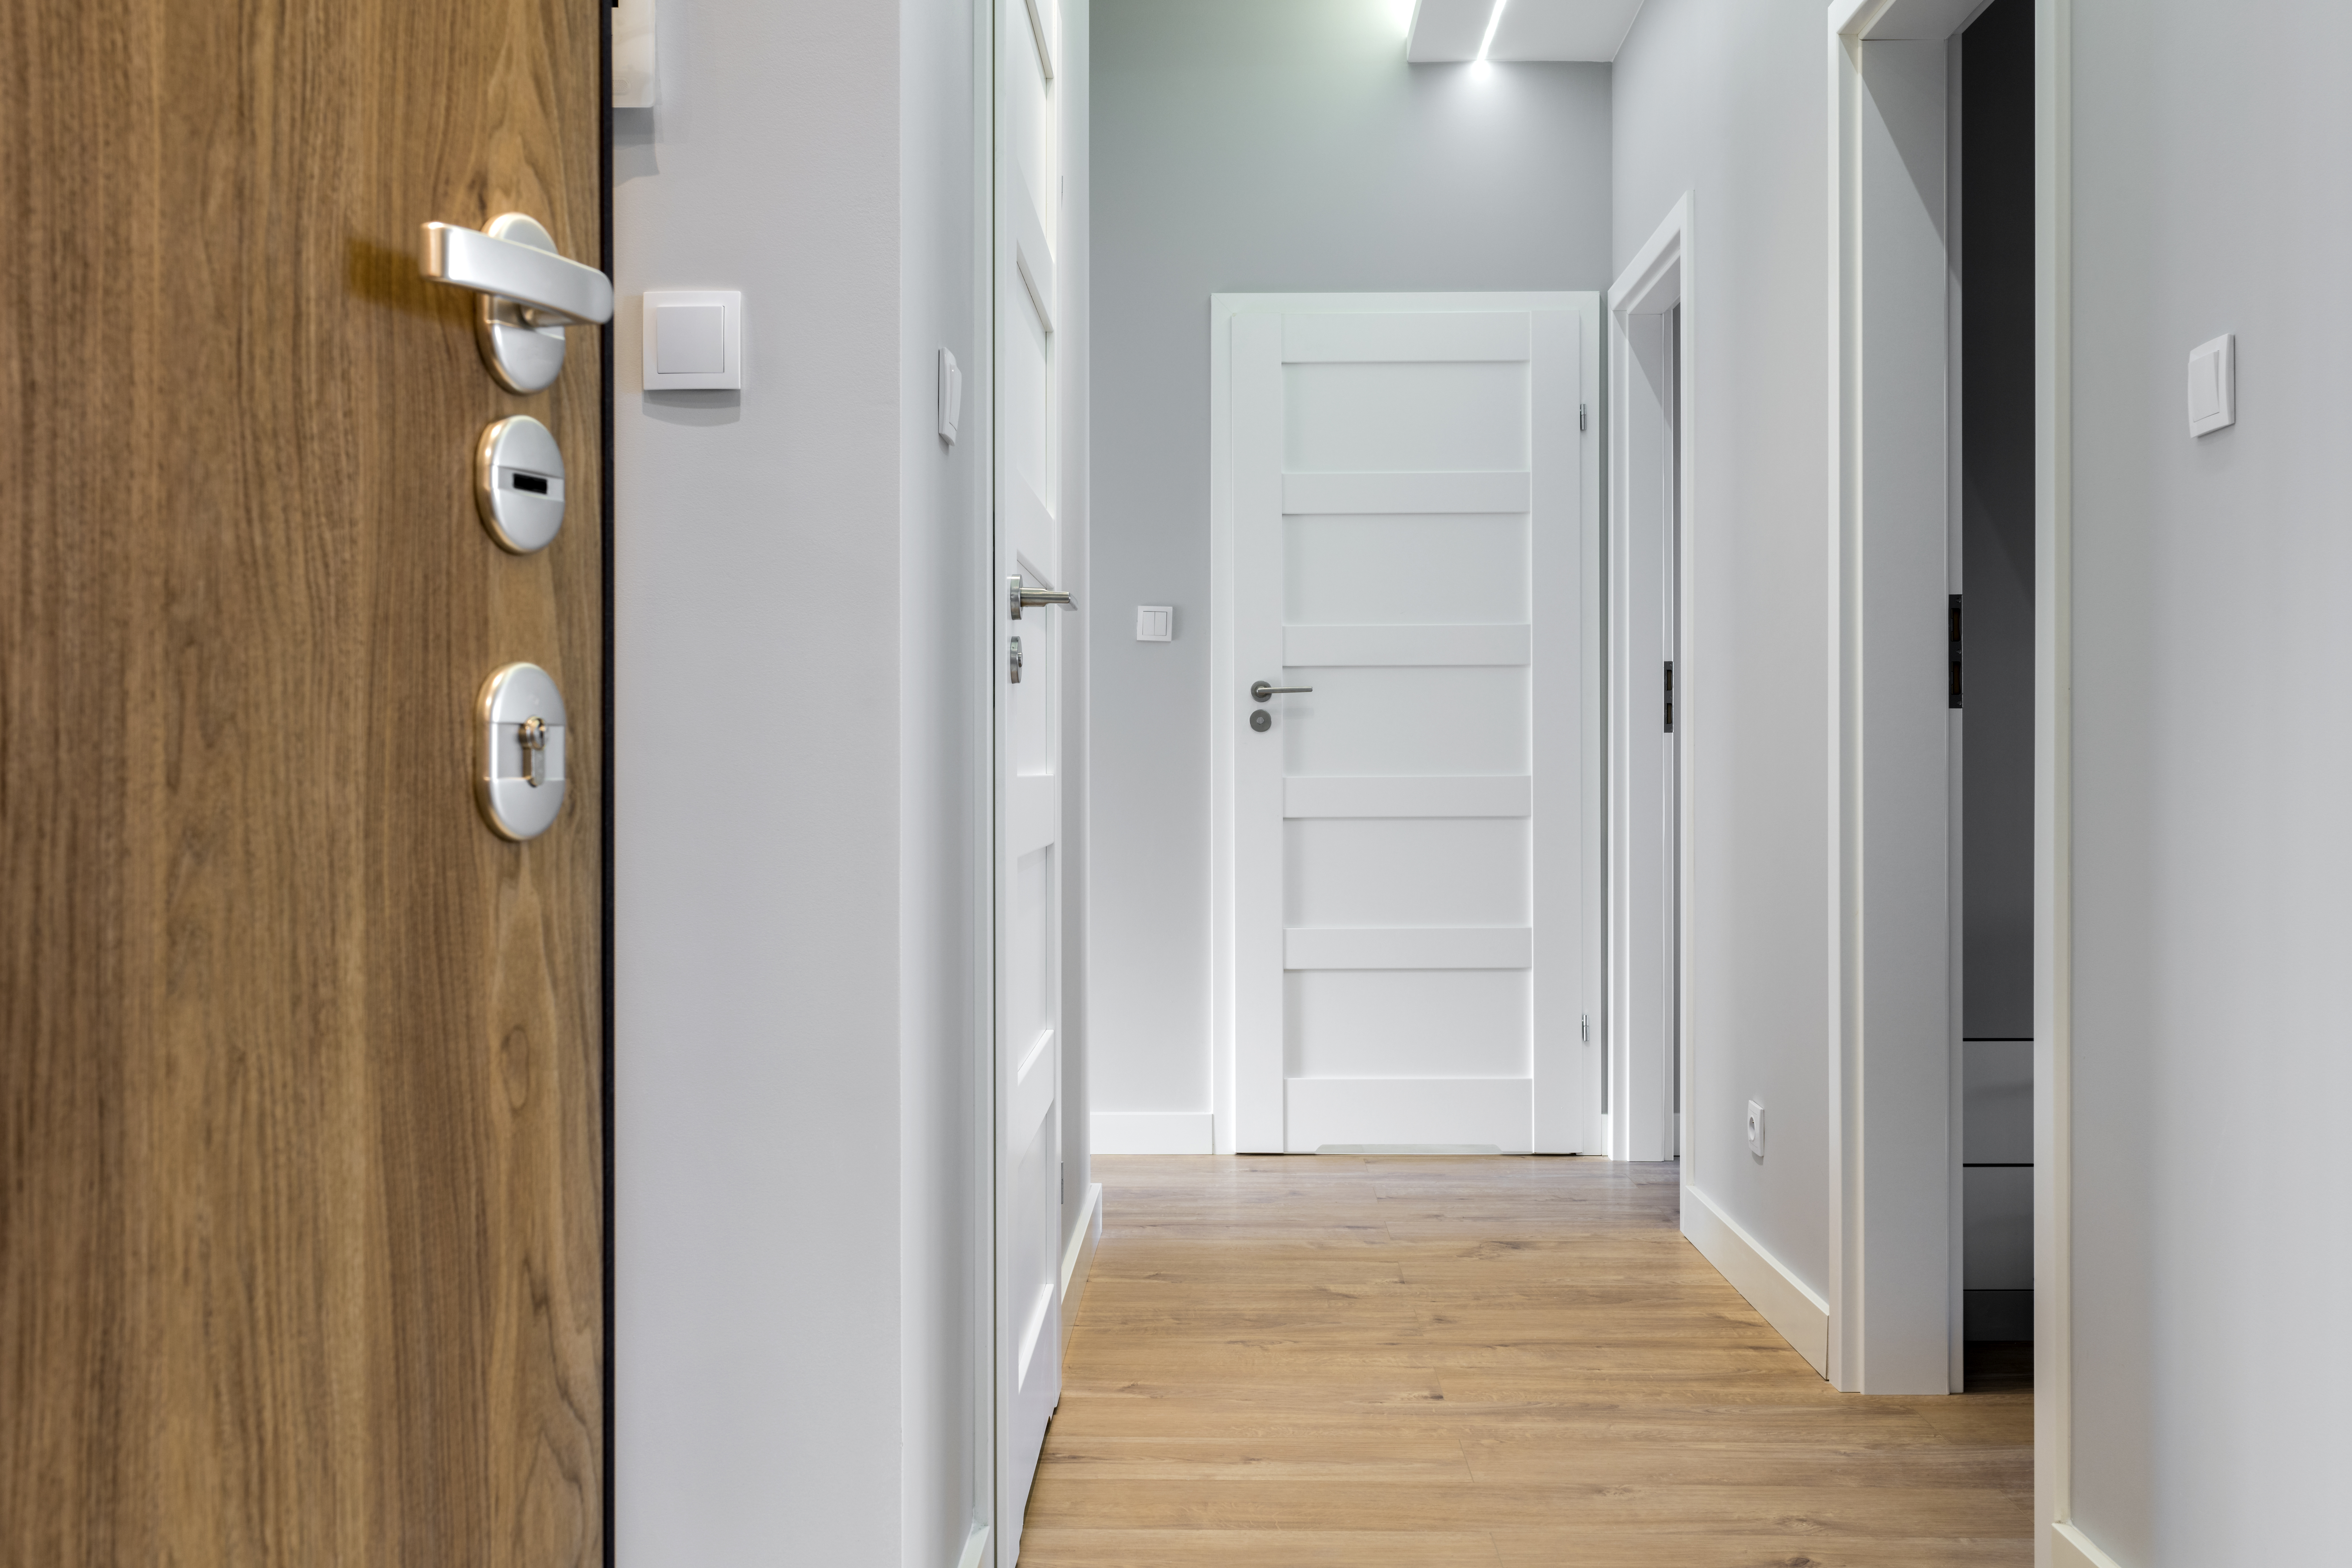 How To Cover A Gap Between The Laminate The Door Casing Home